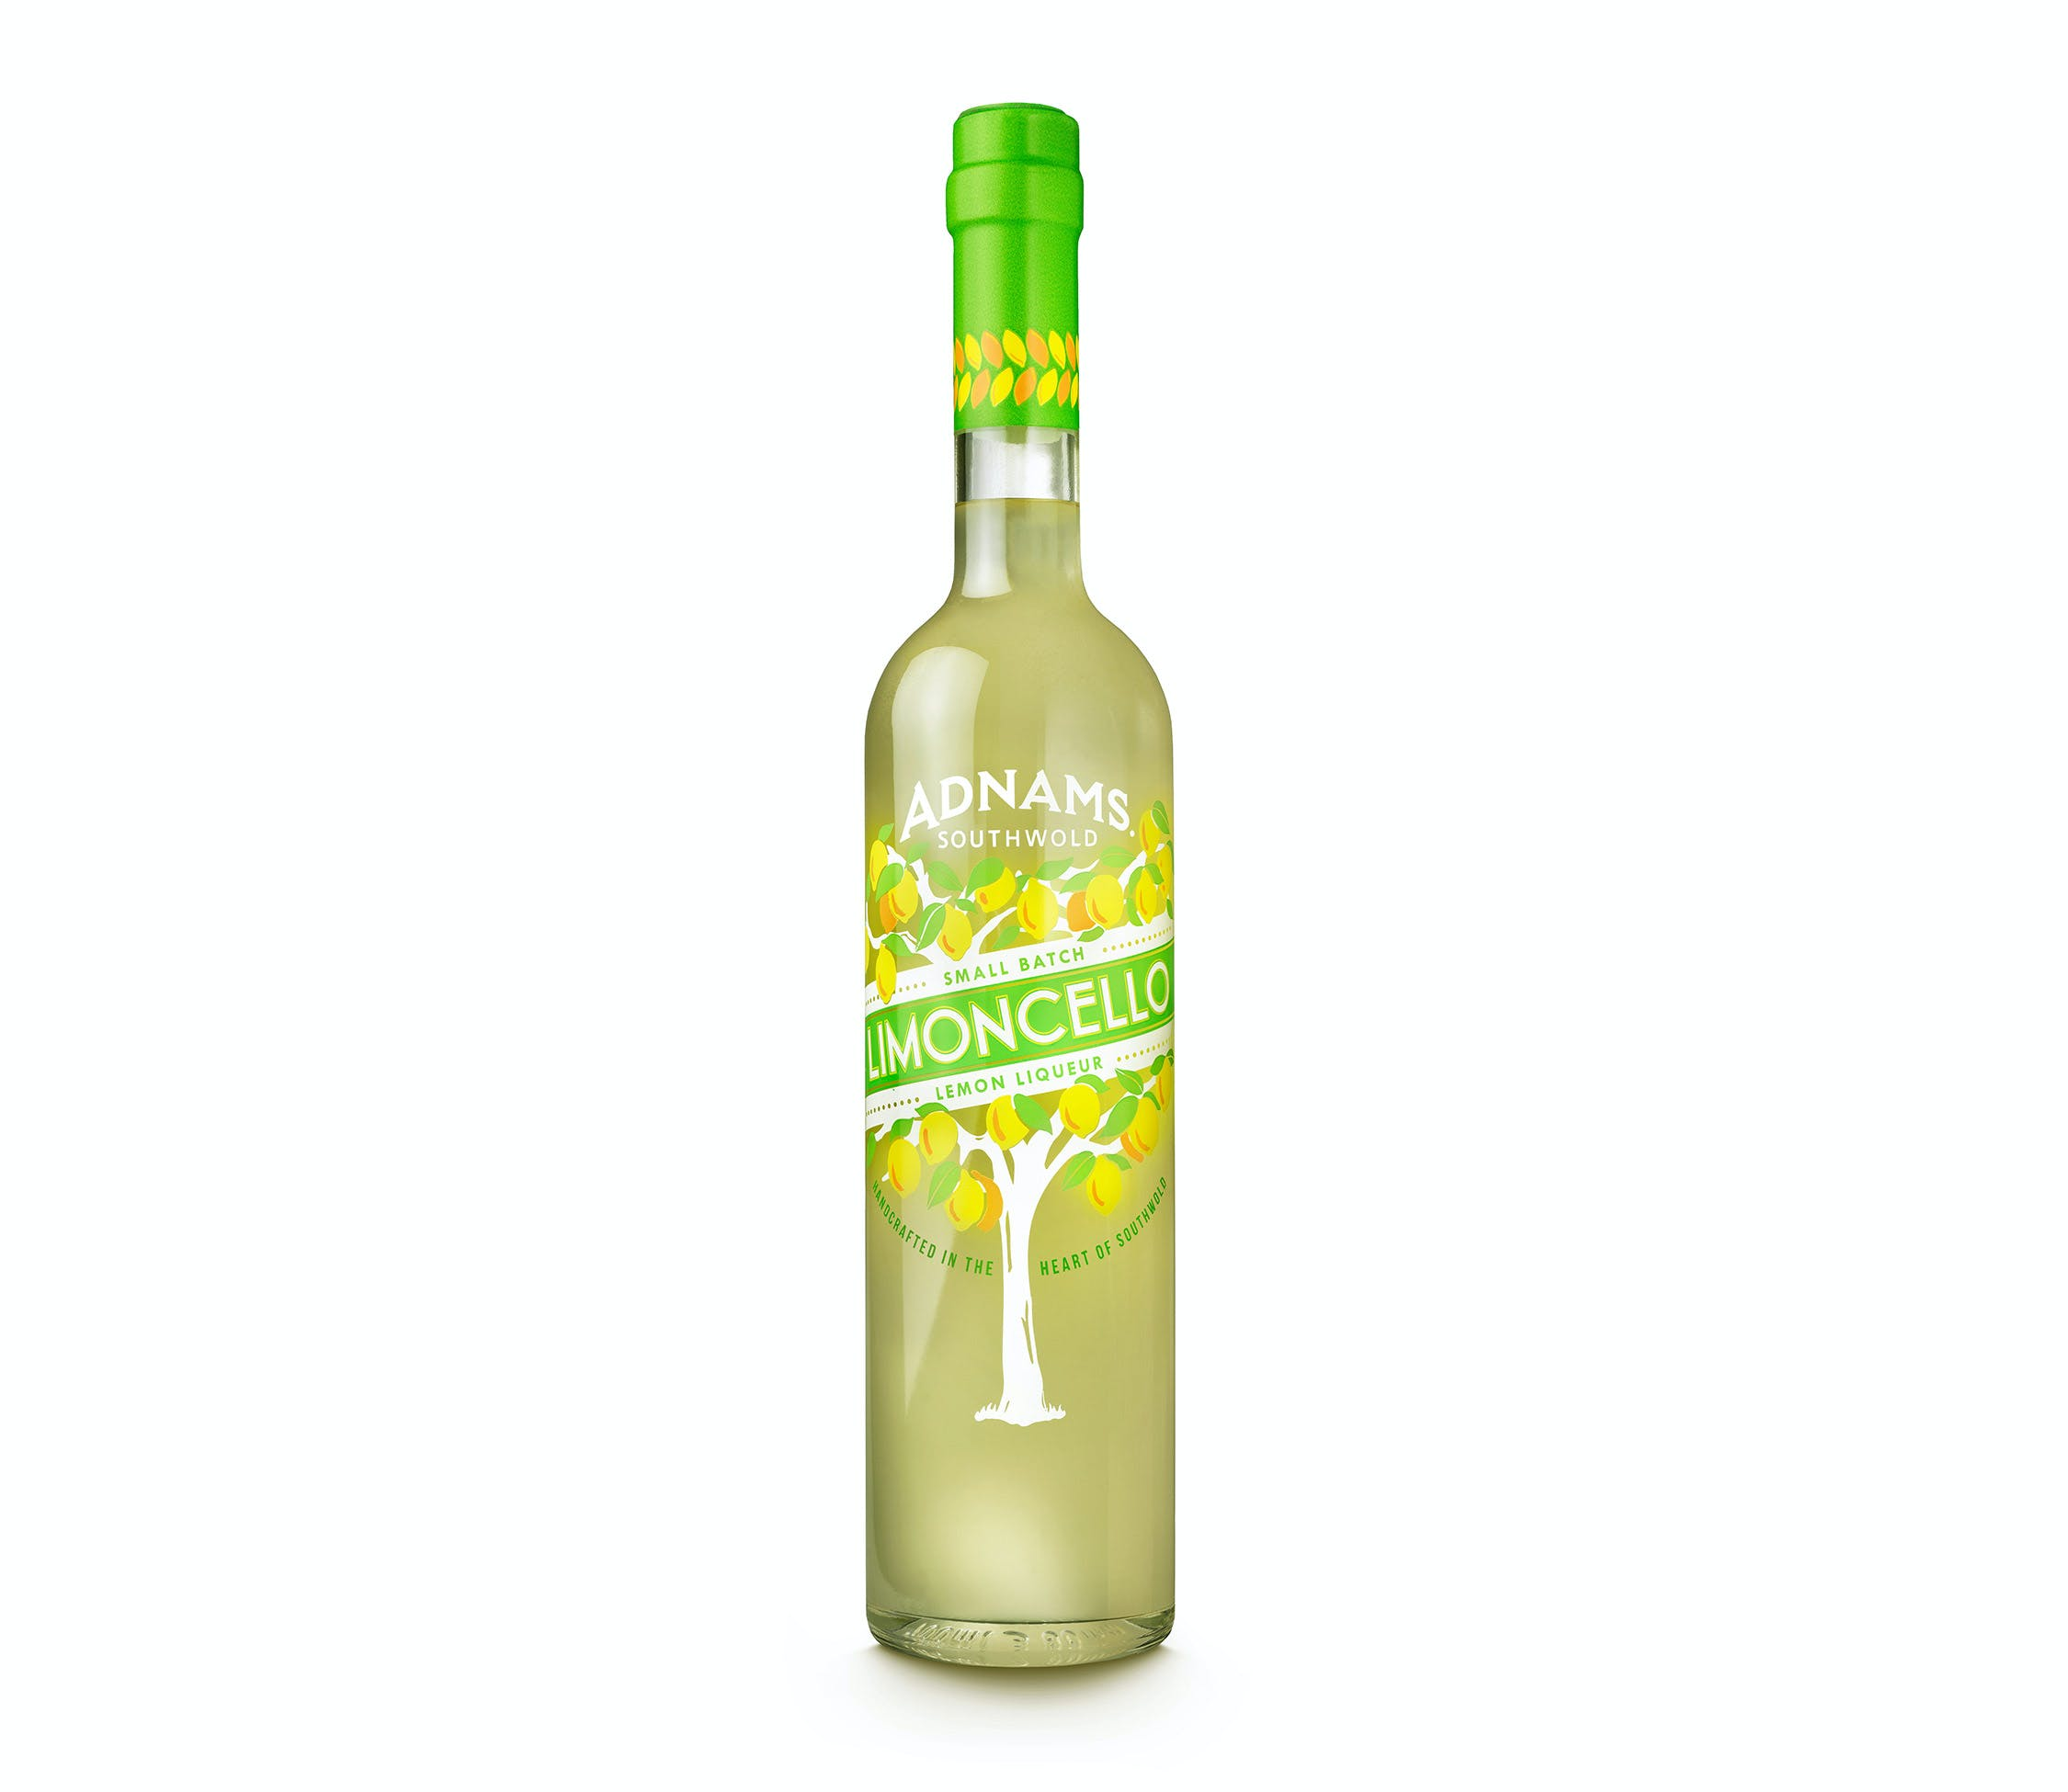 Best Adnams Limoncello Stockists